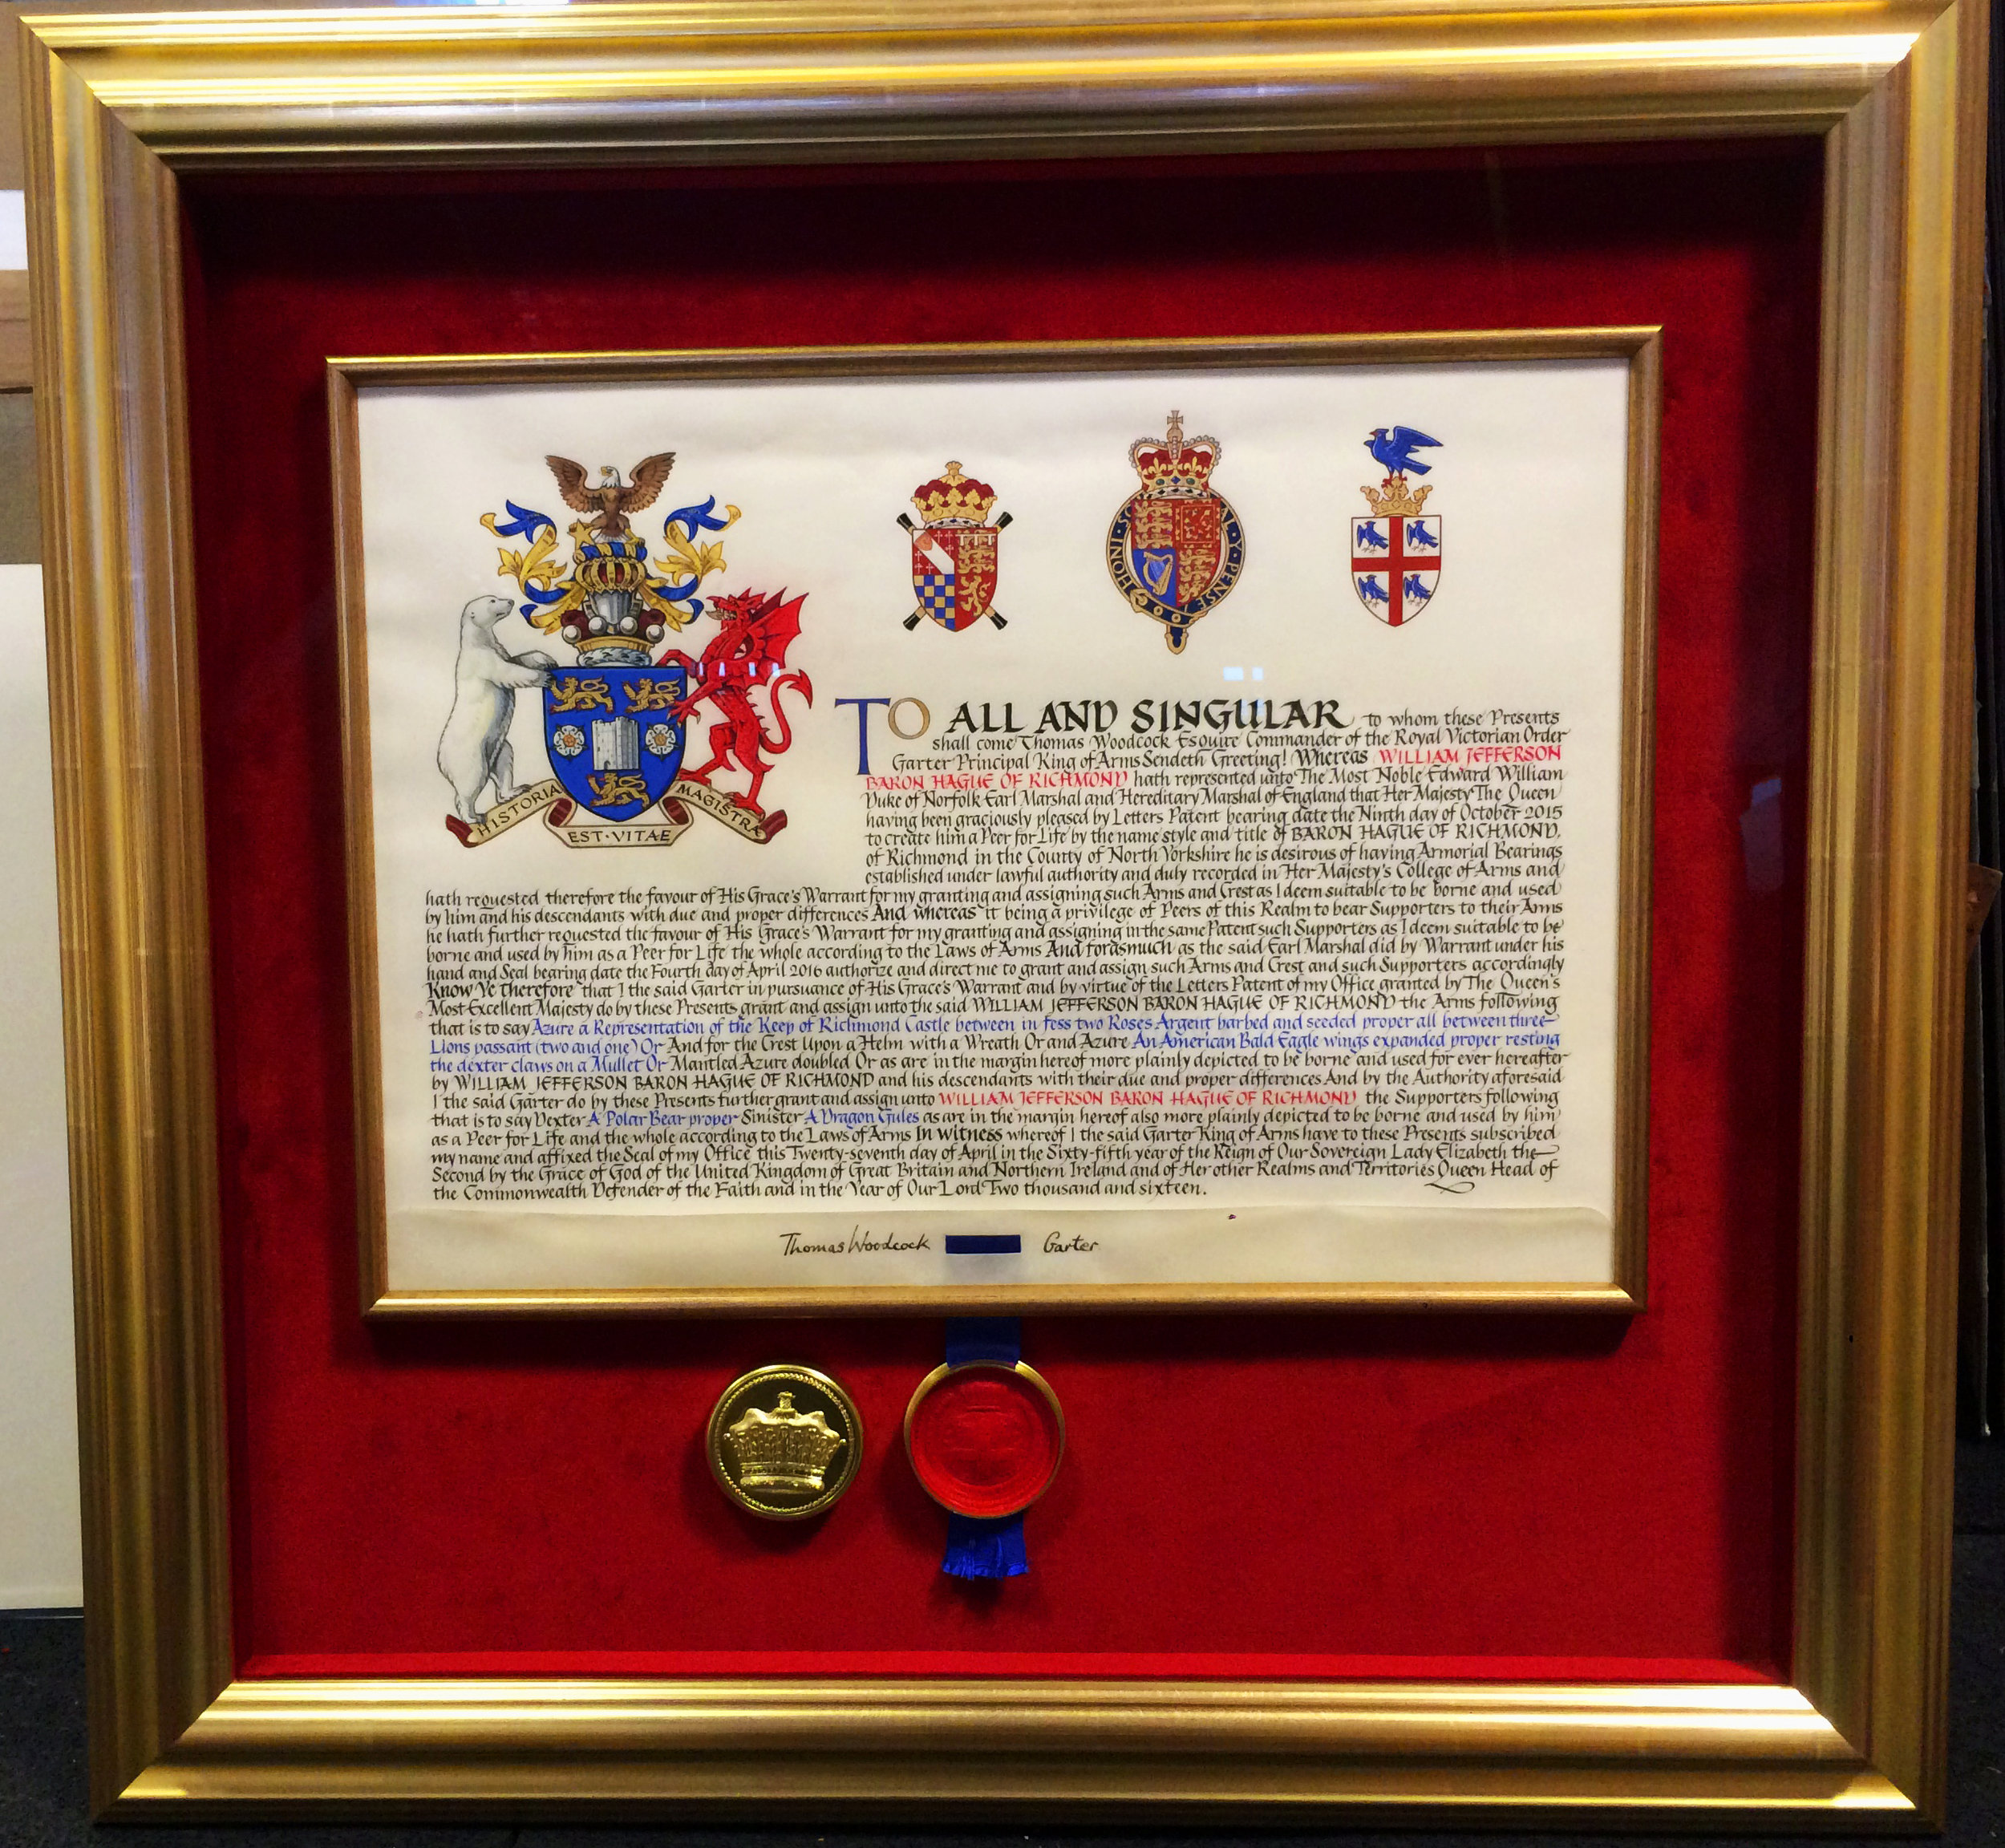 Red velvet wrapped mount for Lord Hague of Richmond. The vellum is held in place behind the edge of the inner gold frame, and the glass is held away from the surface by velvet wrapped spacers. Museum anti-reflection glazing and with UV protection.